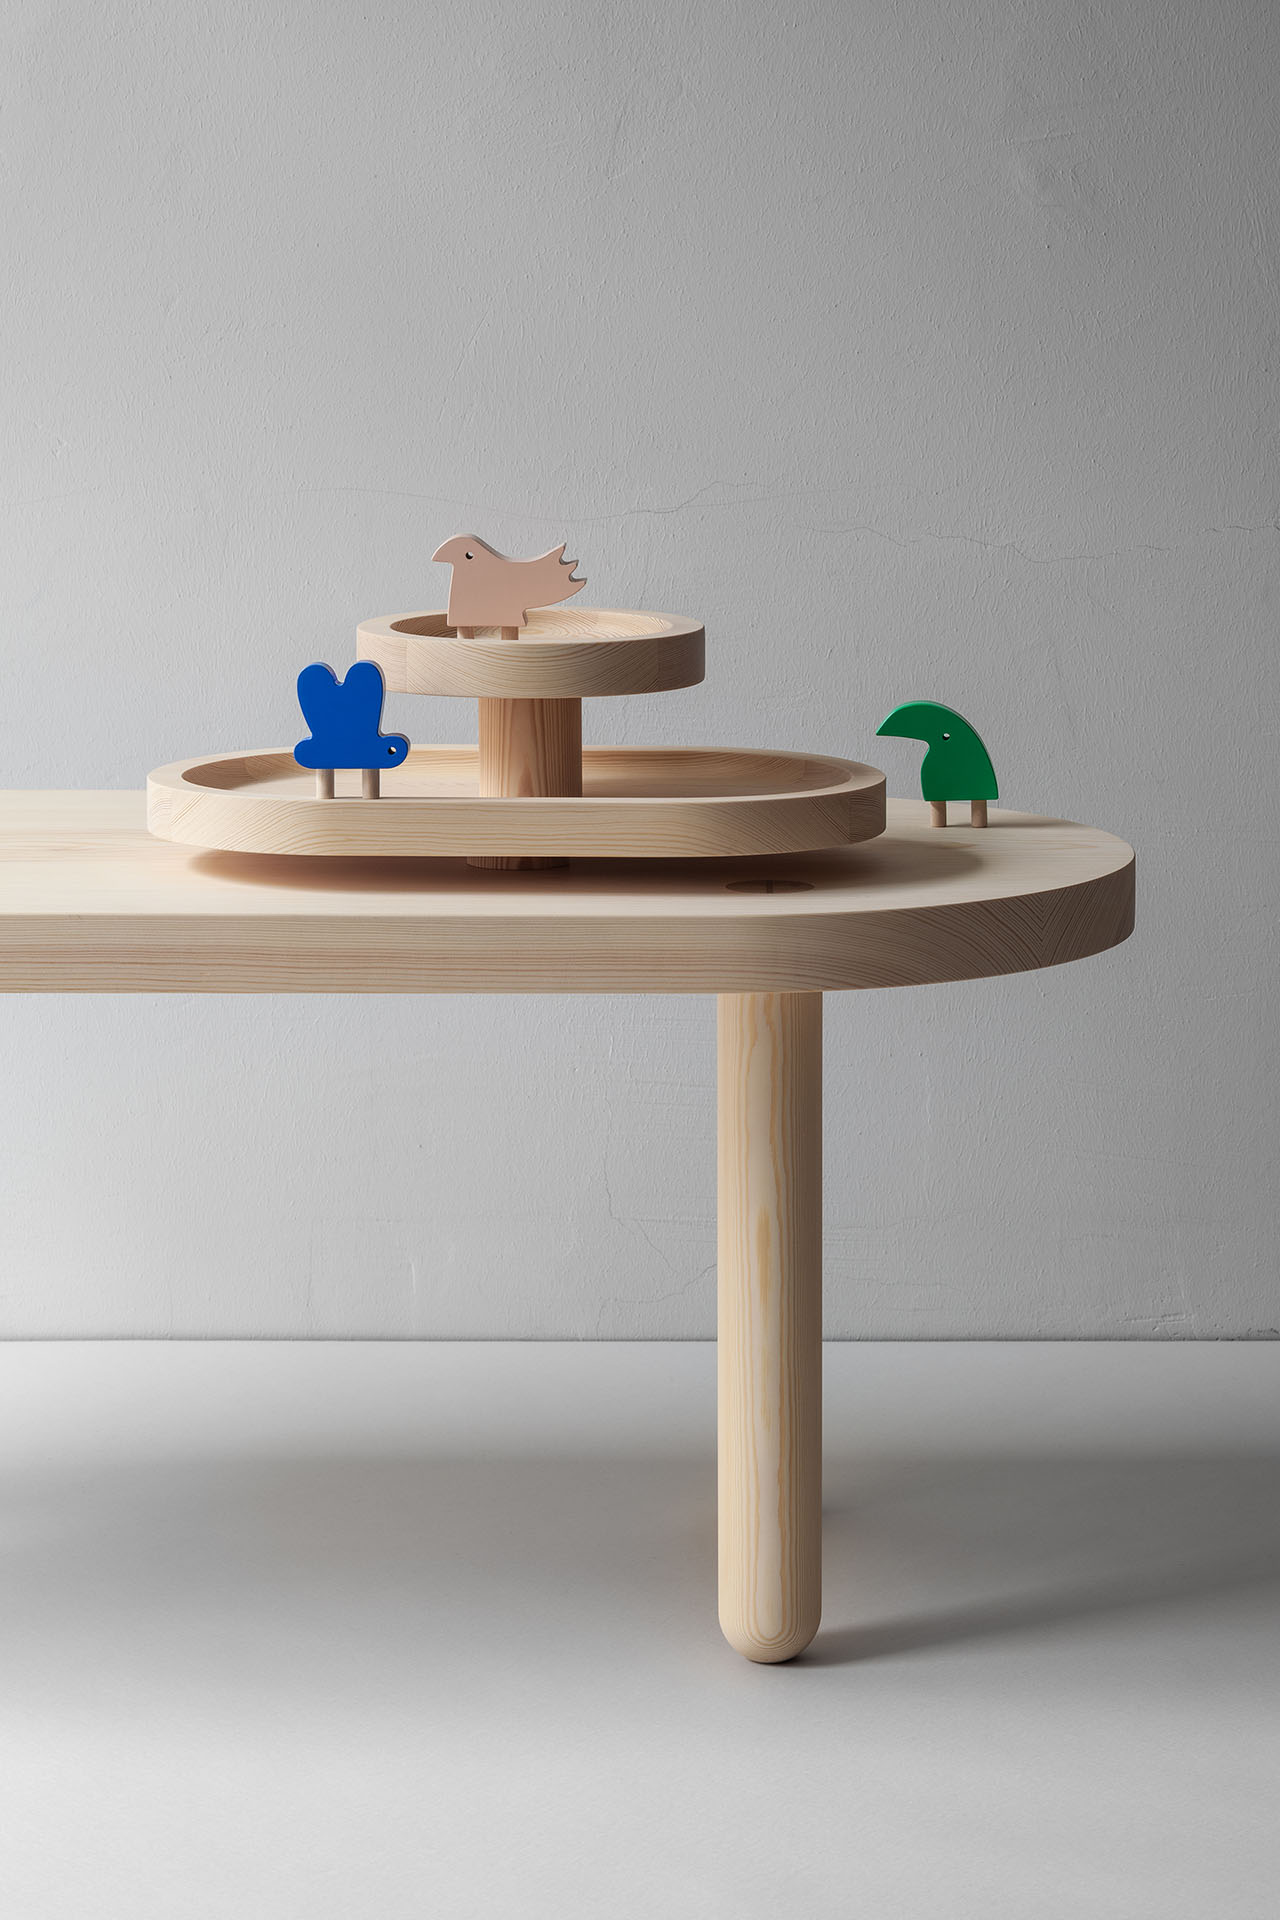 """Dry paint and all the bended branches"" wooden toys by KUMI MOOD and STUDIO OINK (Lea Korzeczek & Matthias Hiller). Mute Magentic furniture series by STUDIO OINK."